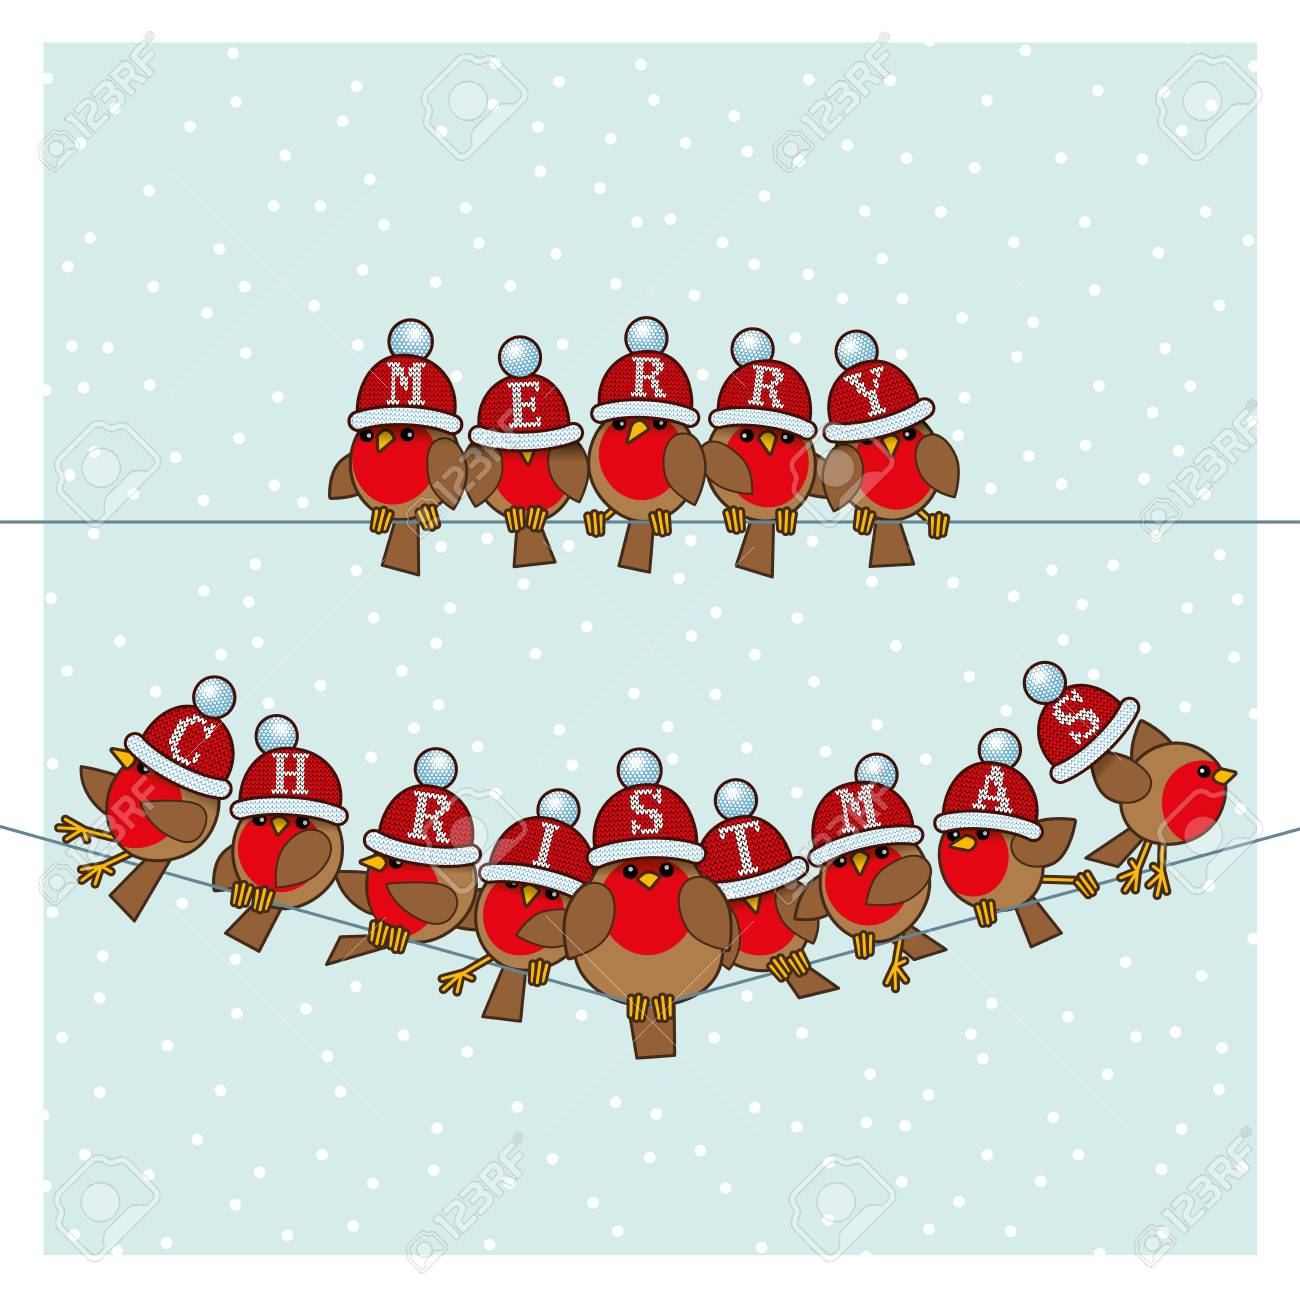 f95db12ddd281 Many Robin Red Breasts wearing Red Santa Woolly Bobble Hats spelling Merry  Christmas sitting on a